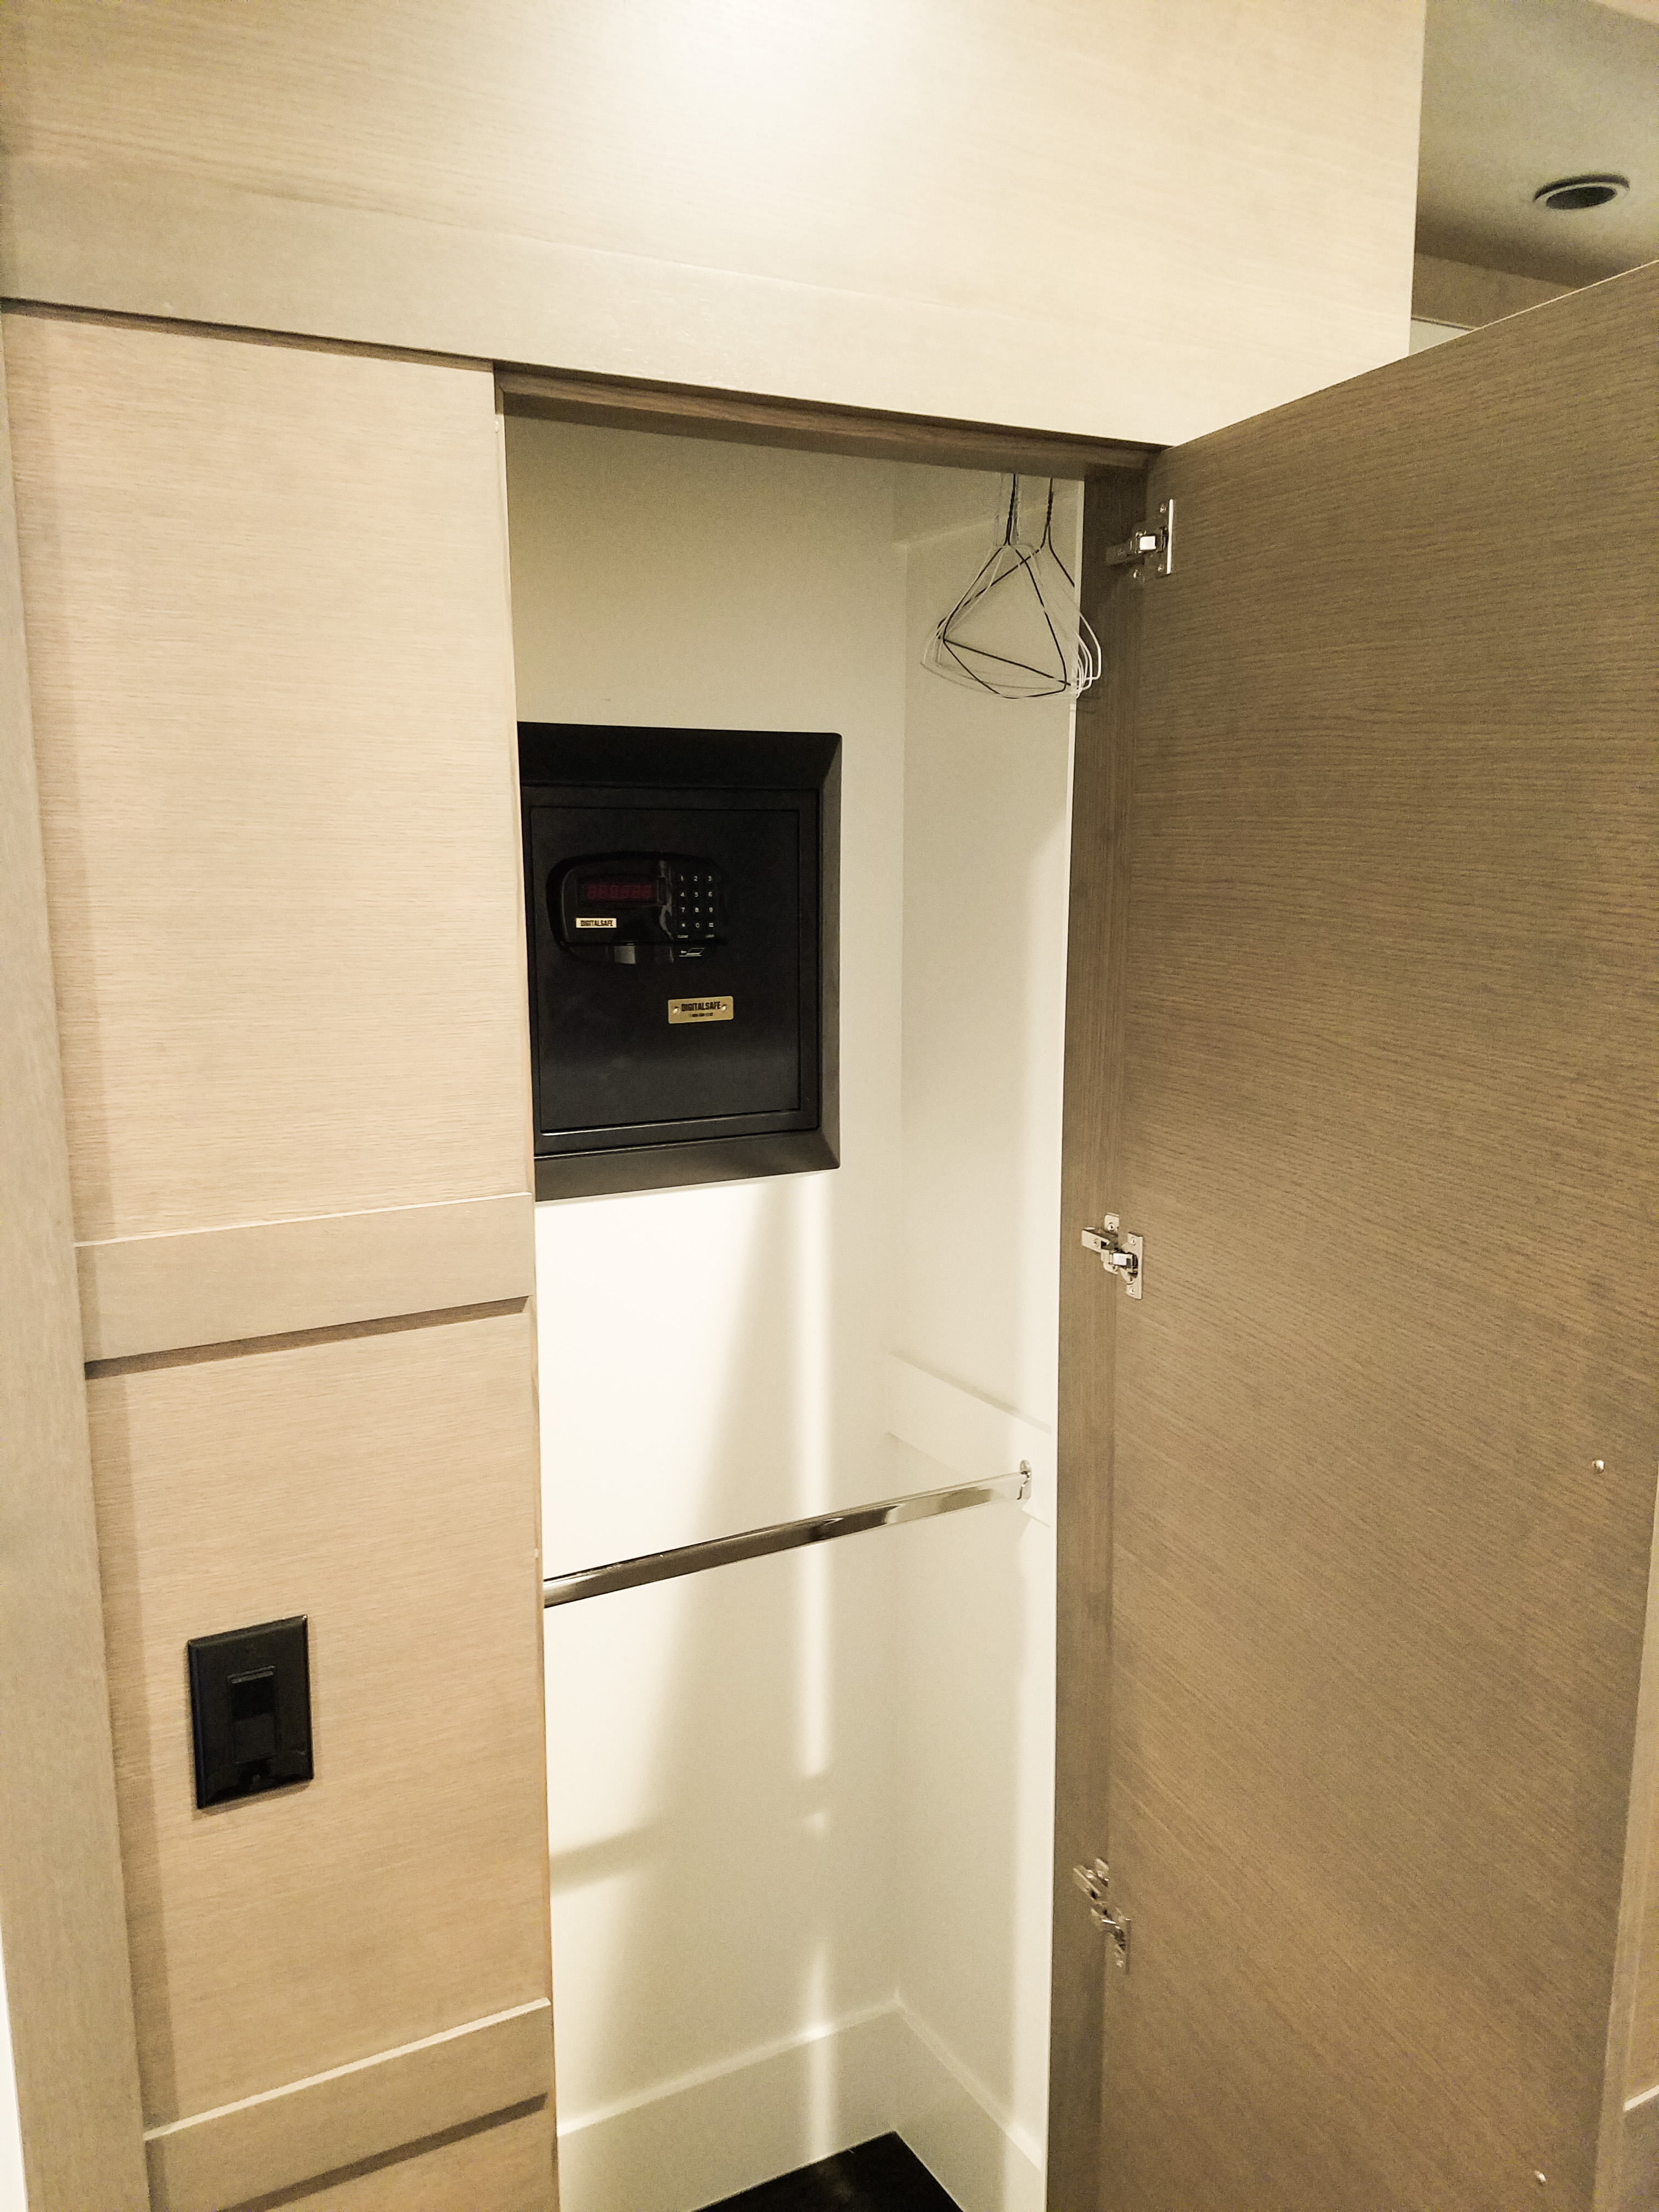 The Silver Wall Safe From DigitalSafe